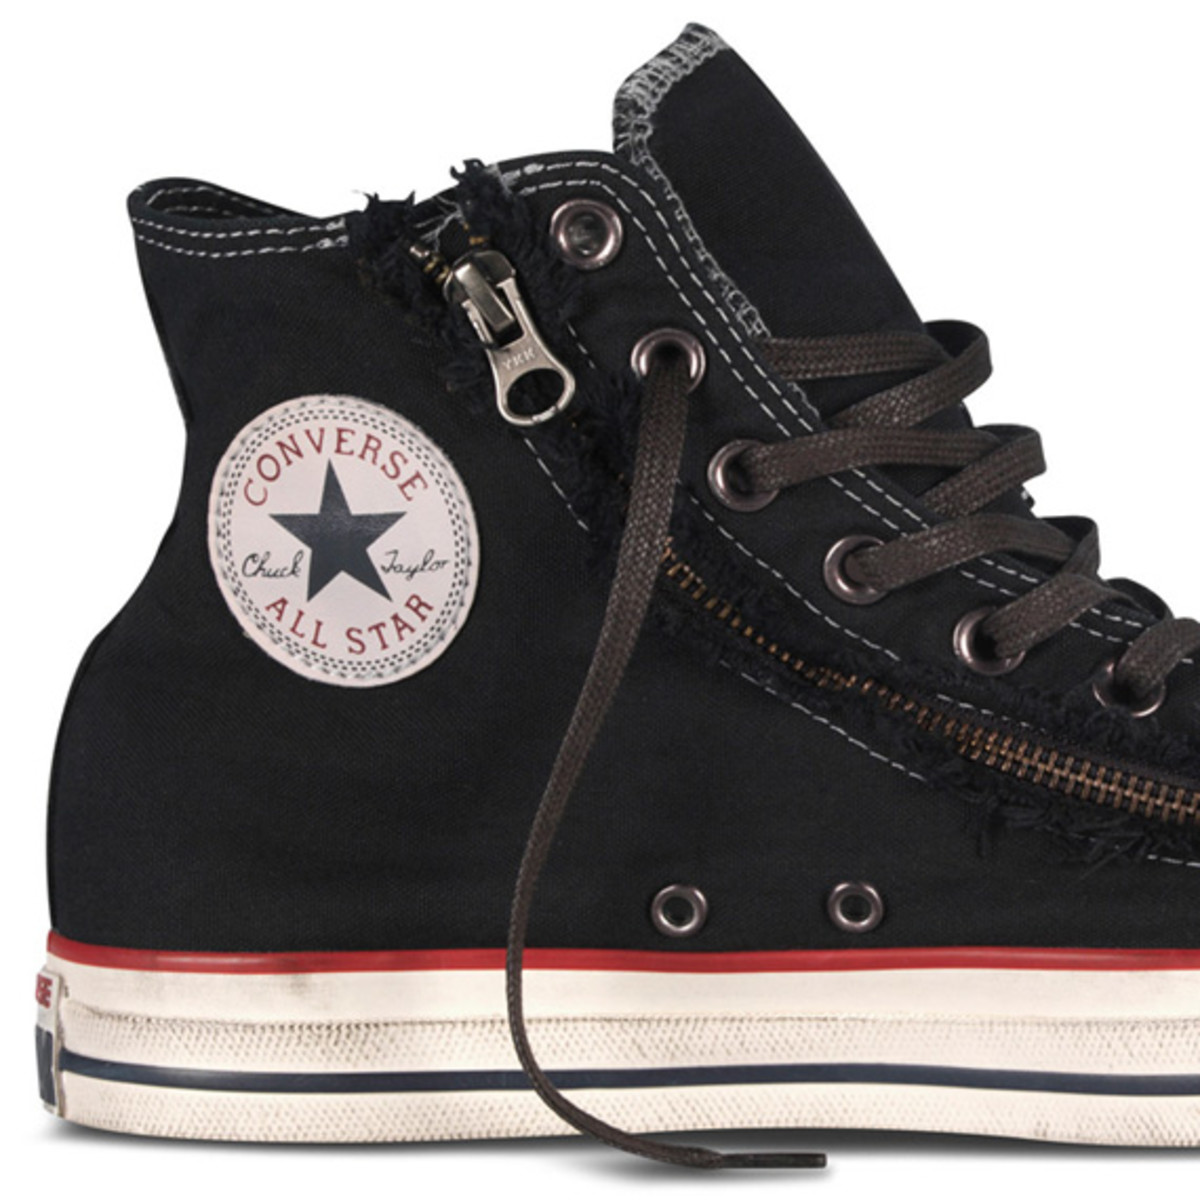 CONVERSE Chuck Taylor All Star Double Zip - Fall 2013 Collection - 10